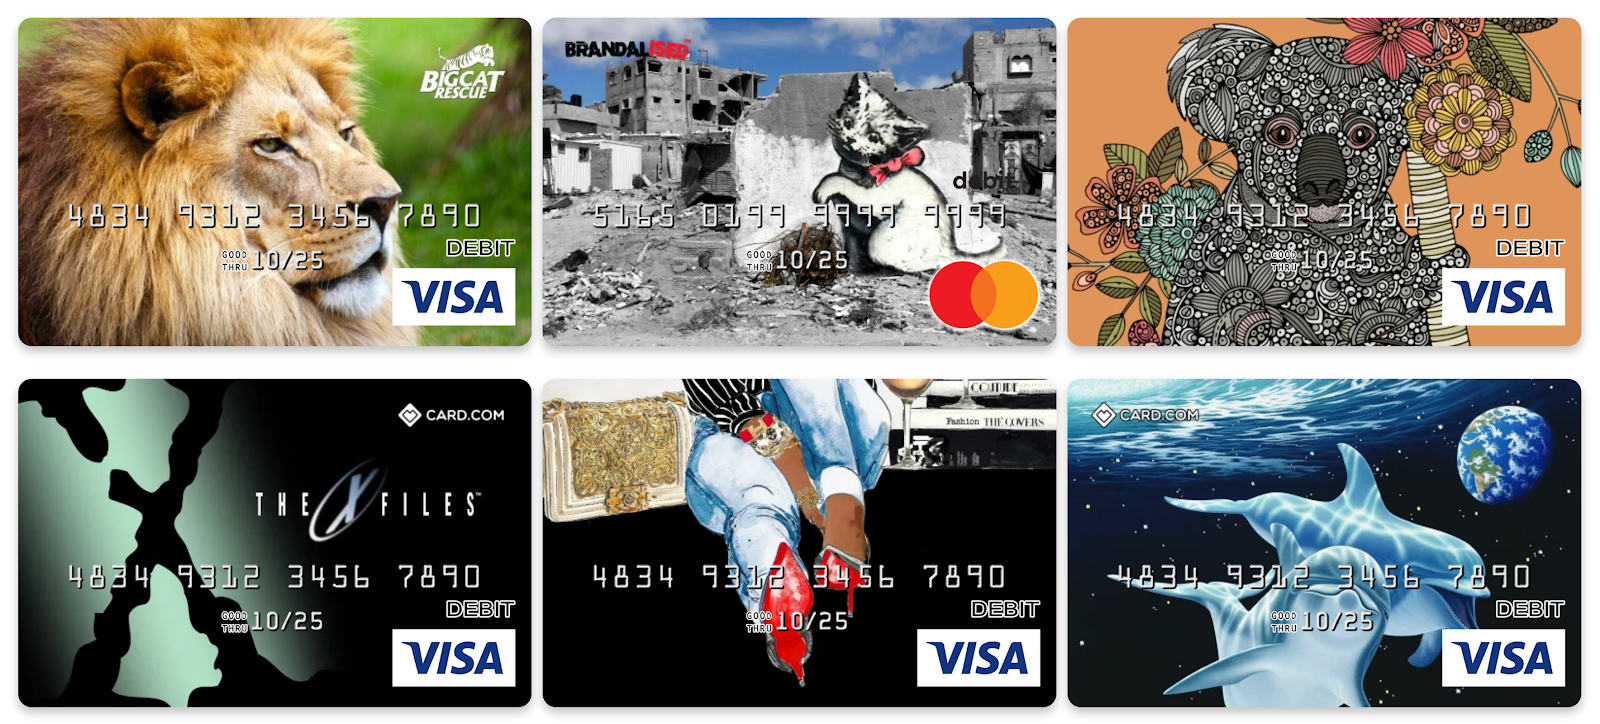 CARD Review: Is The Prepaid Card With The Simplest Name Right For You? - Card gallery